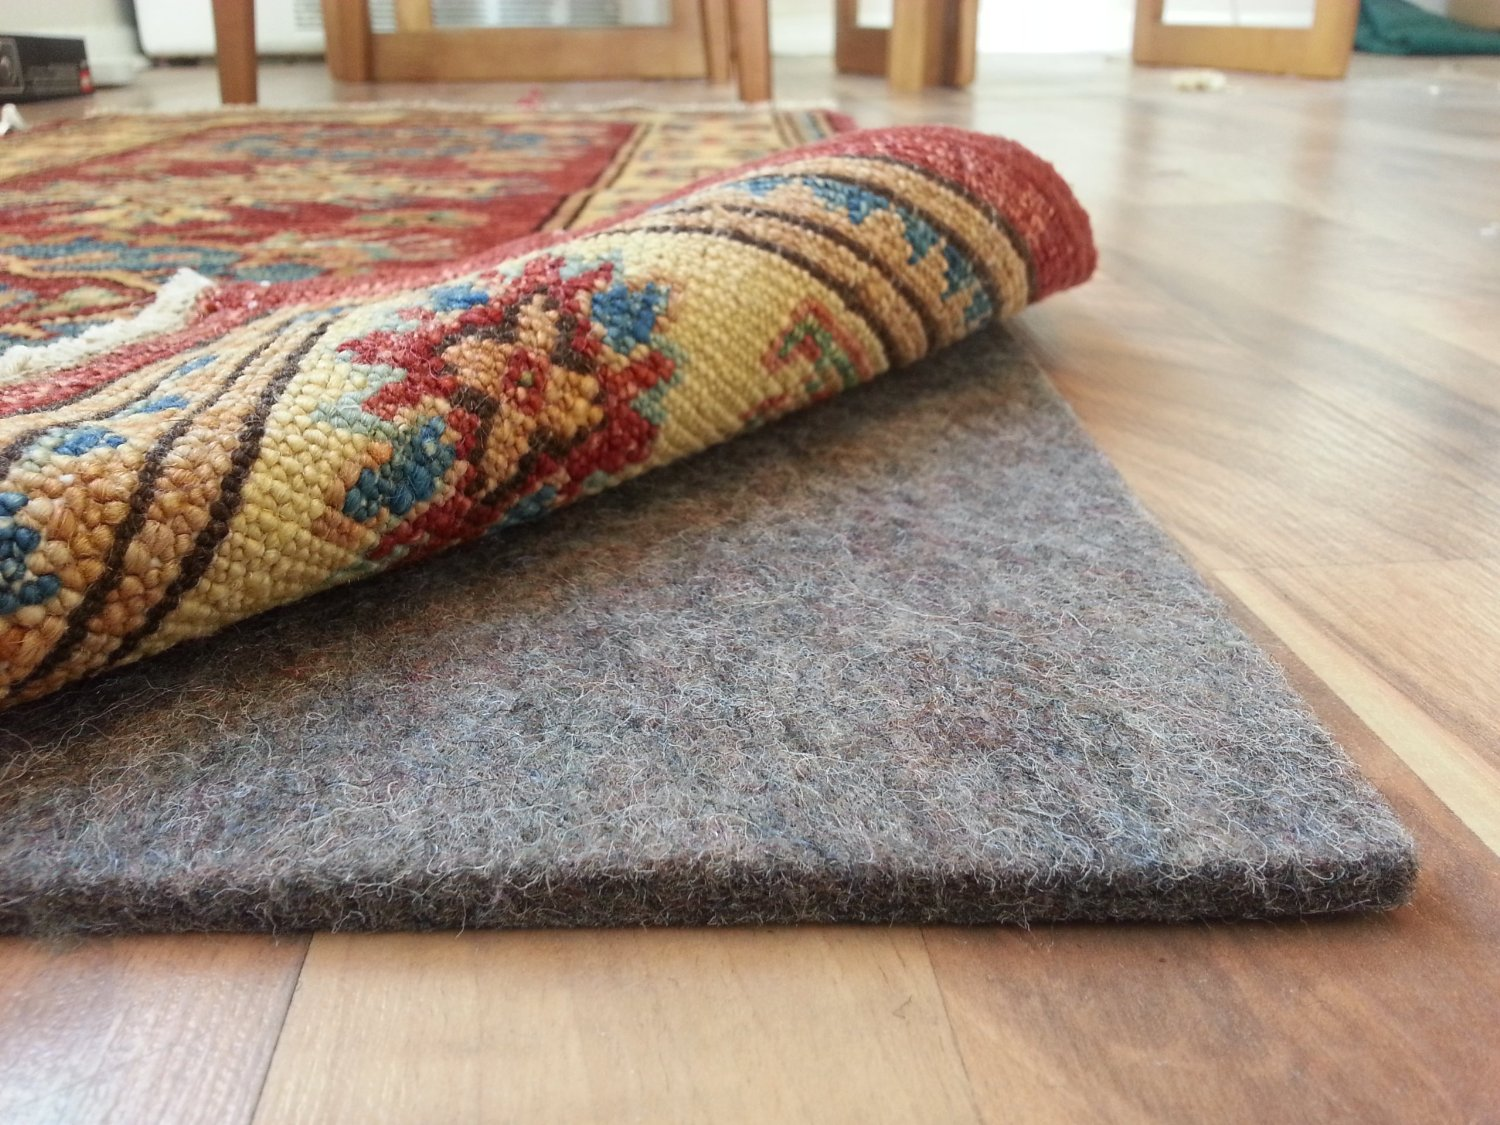 100% Felt Rug Pad - SAFE for all floors - Extra Thick - 5' x 7' - Add Cushion, Comfort and Protection Shaw COMINHKR062200